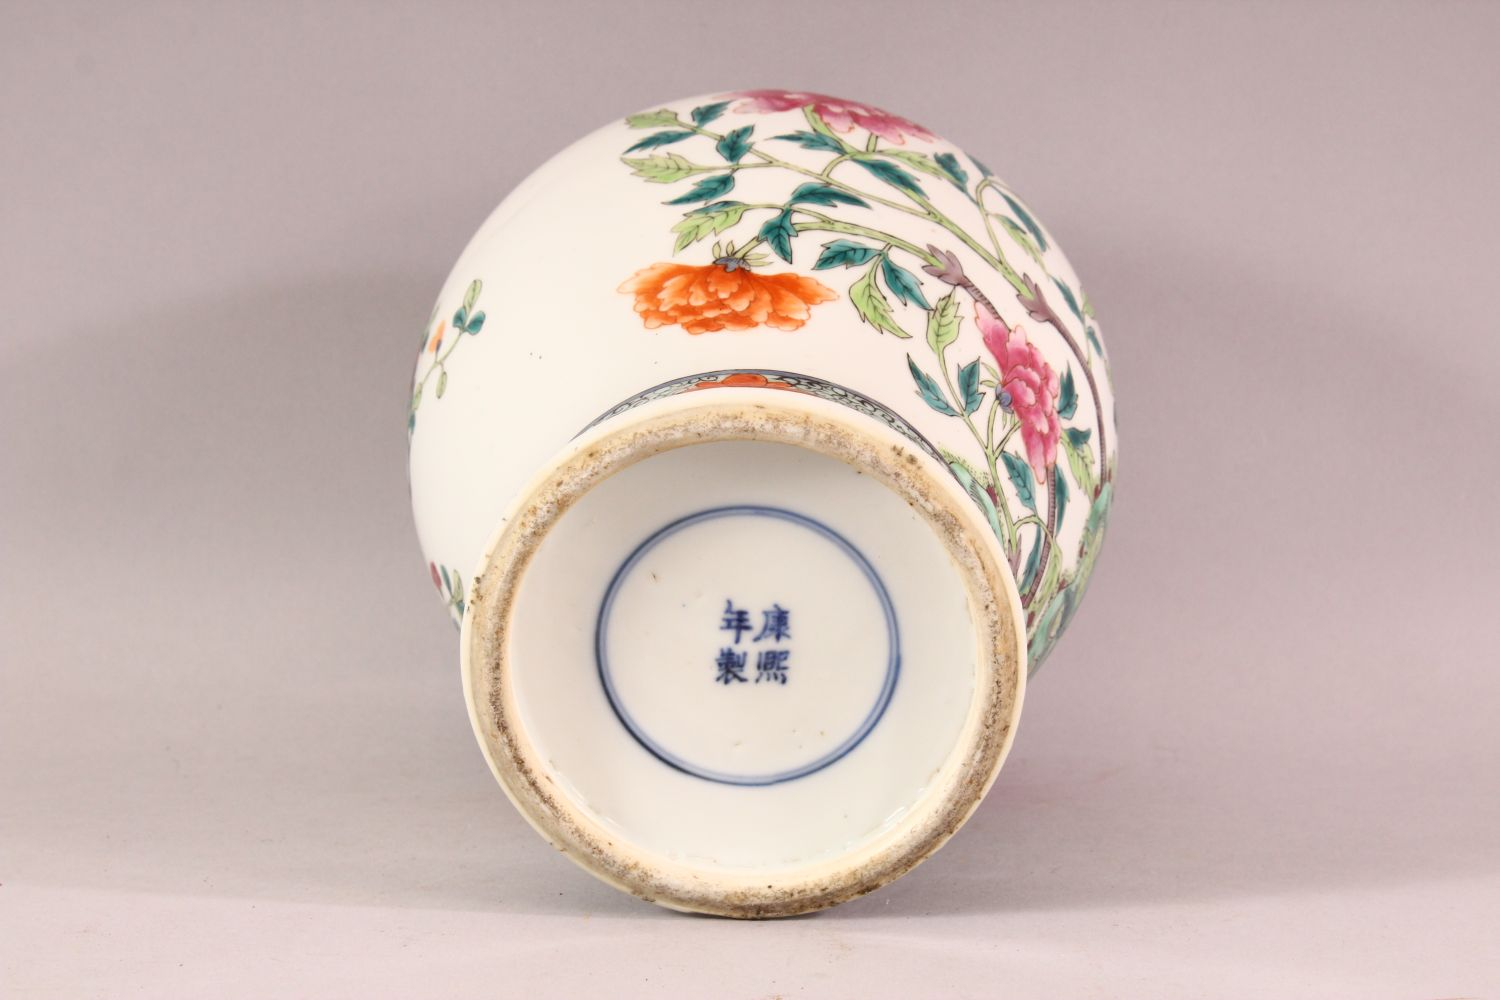 A CHINESE FAMILLE ROSE PORCELAIN JAR & COVER - decorated with scenes of native floral landscape - Image 7 of 8